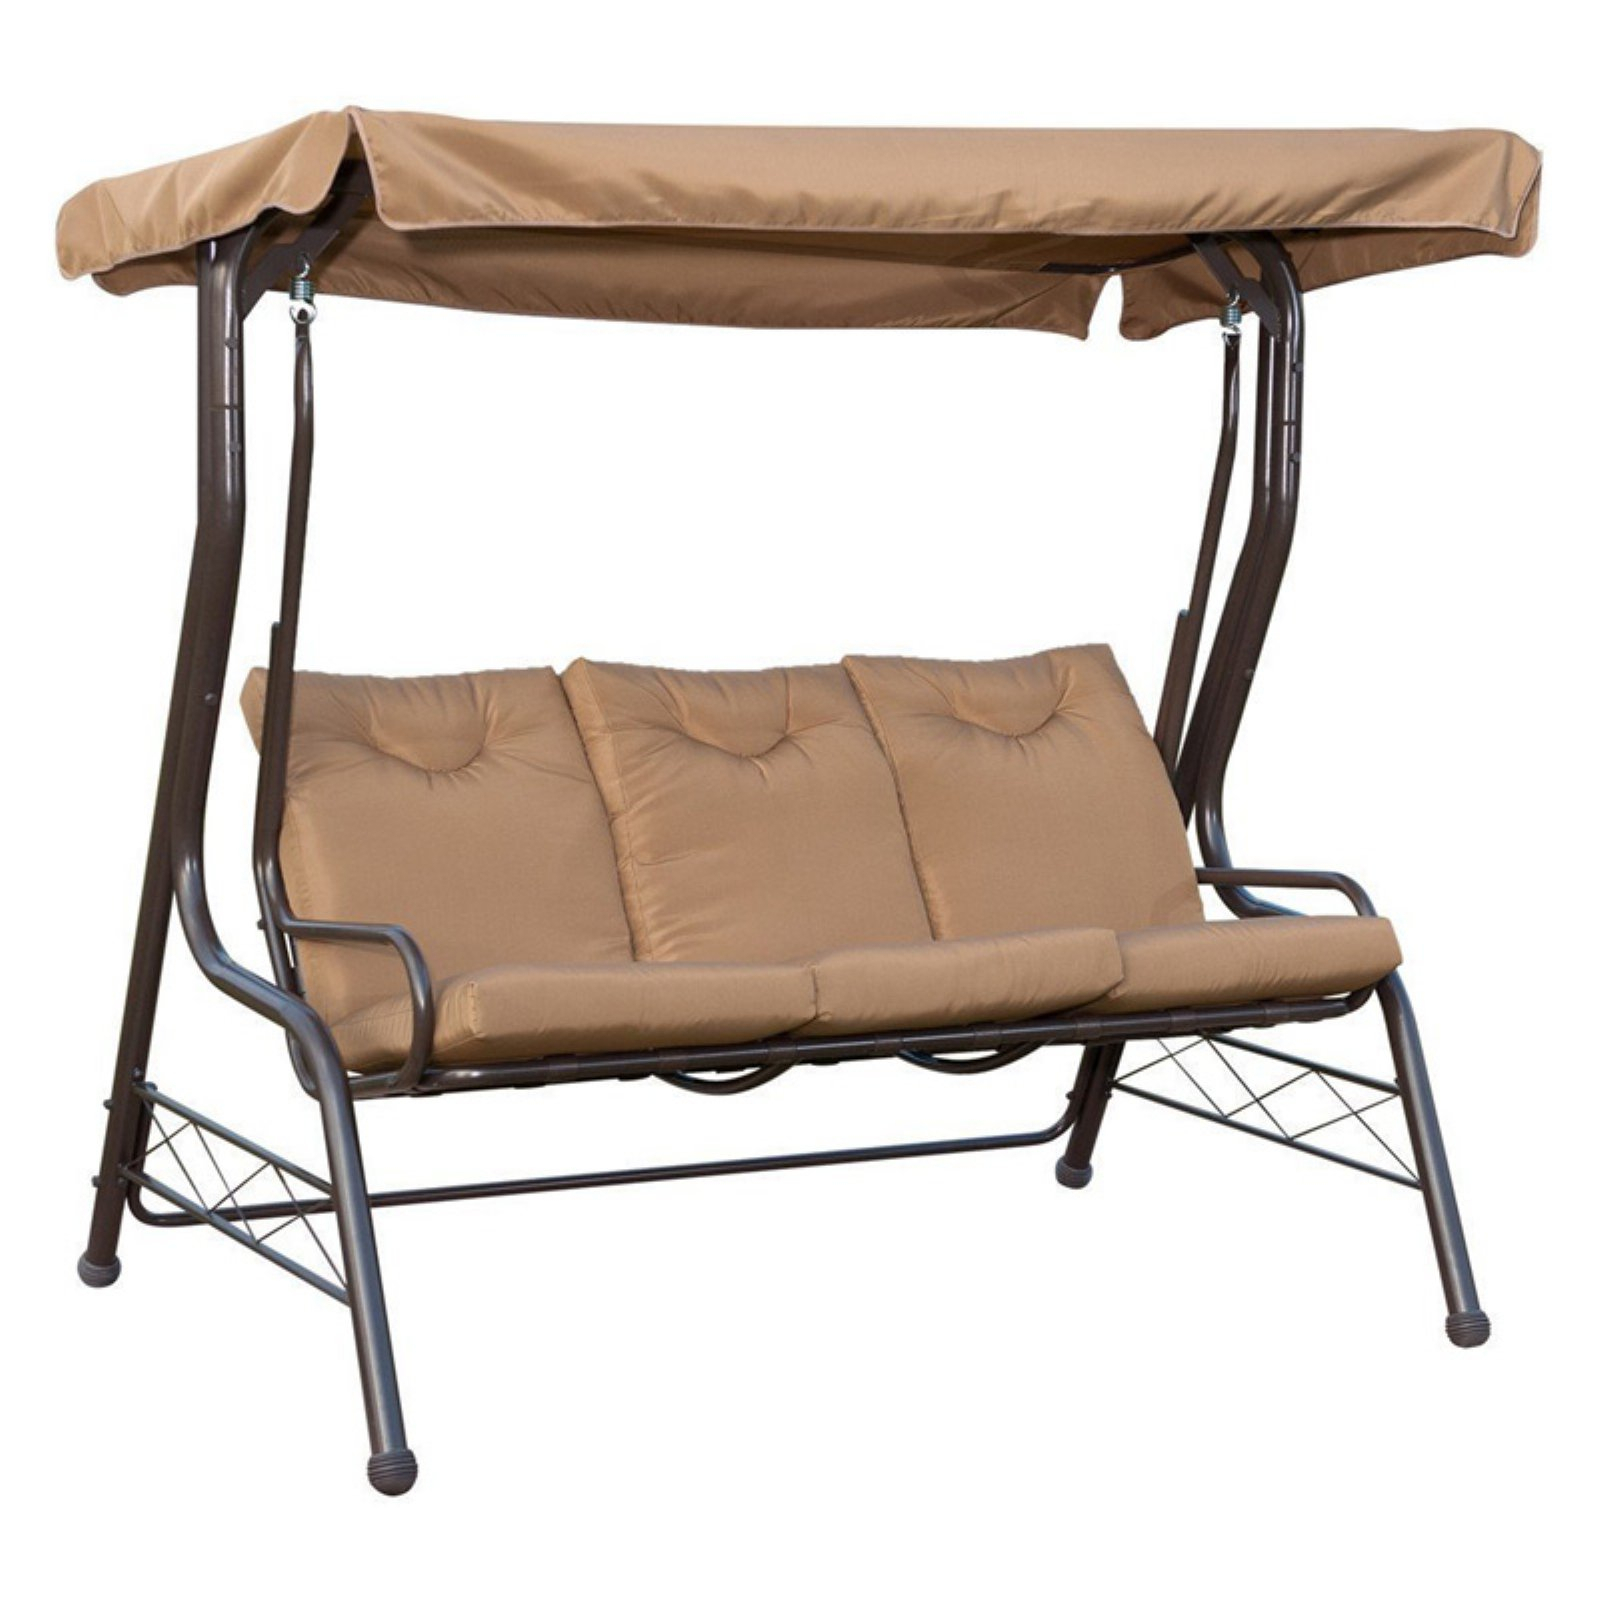 Patiopost 3 Seat Padded Porch Swing With Frame And Canopy In 3 Seats Patio Canopy Swing Gliders Hammock Cushioned Steel Frame (Image 23 of 25)